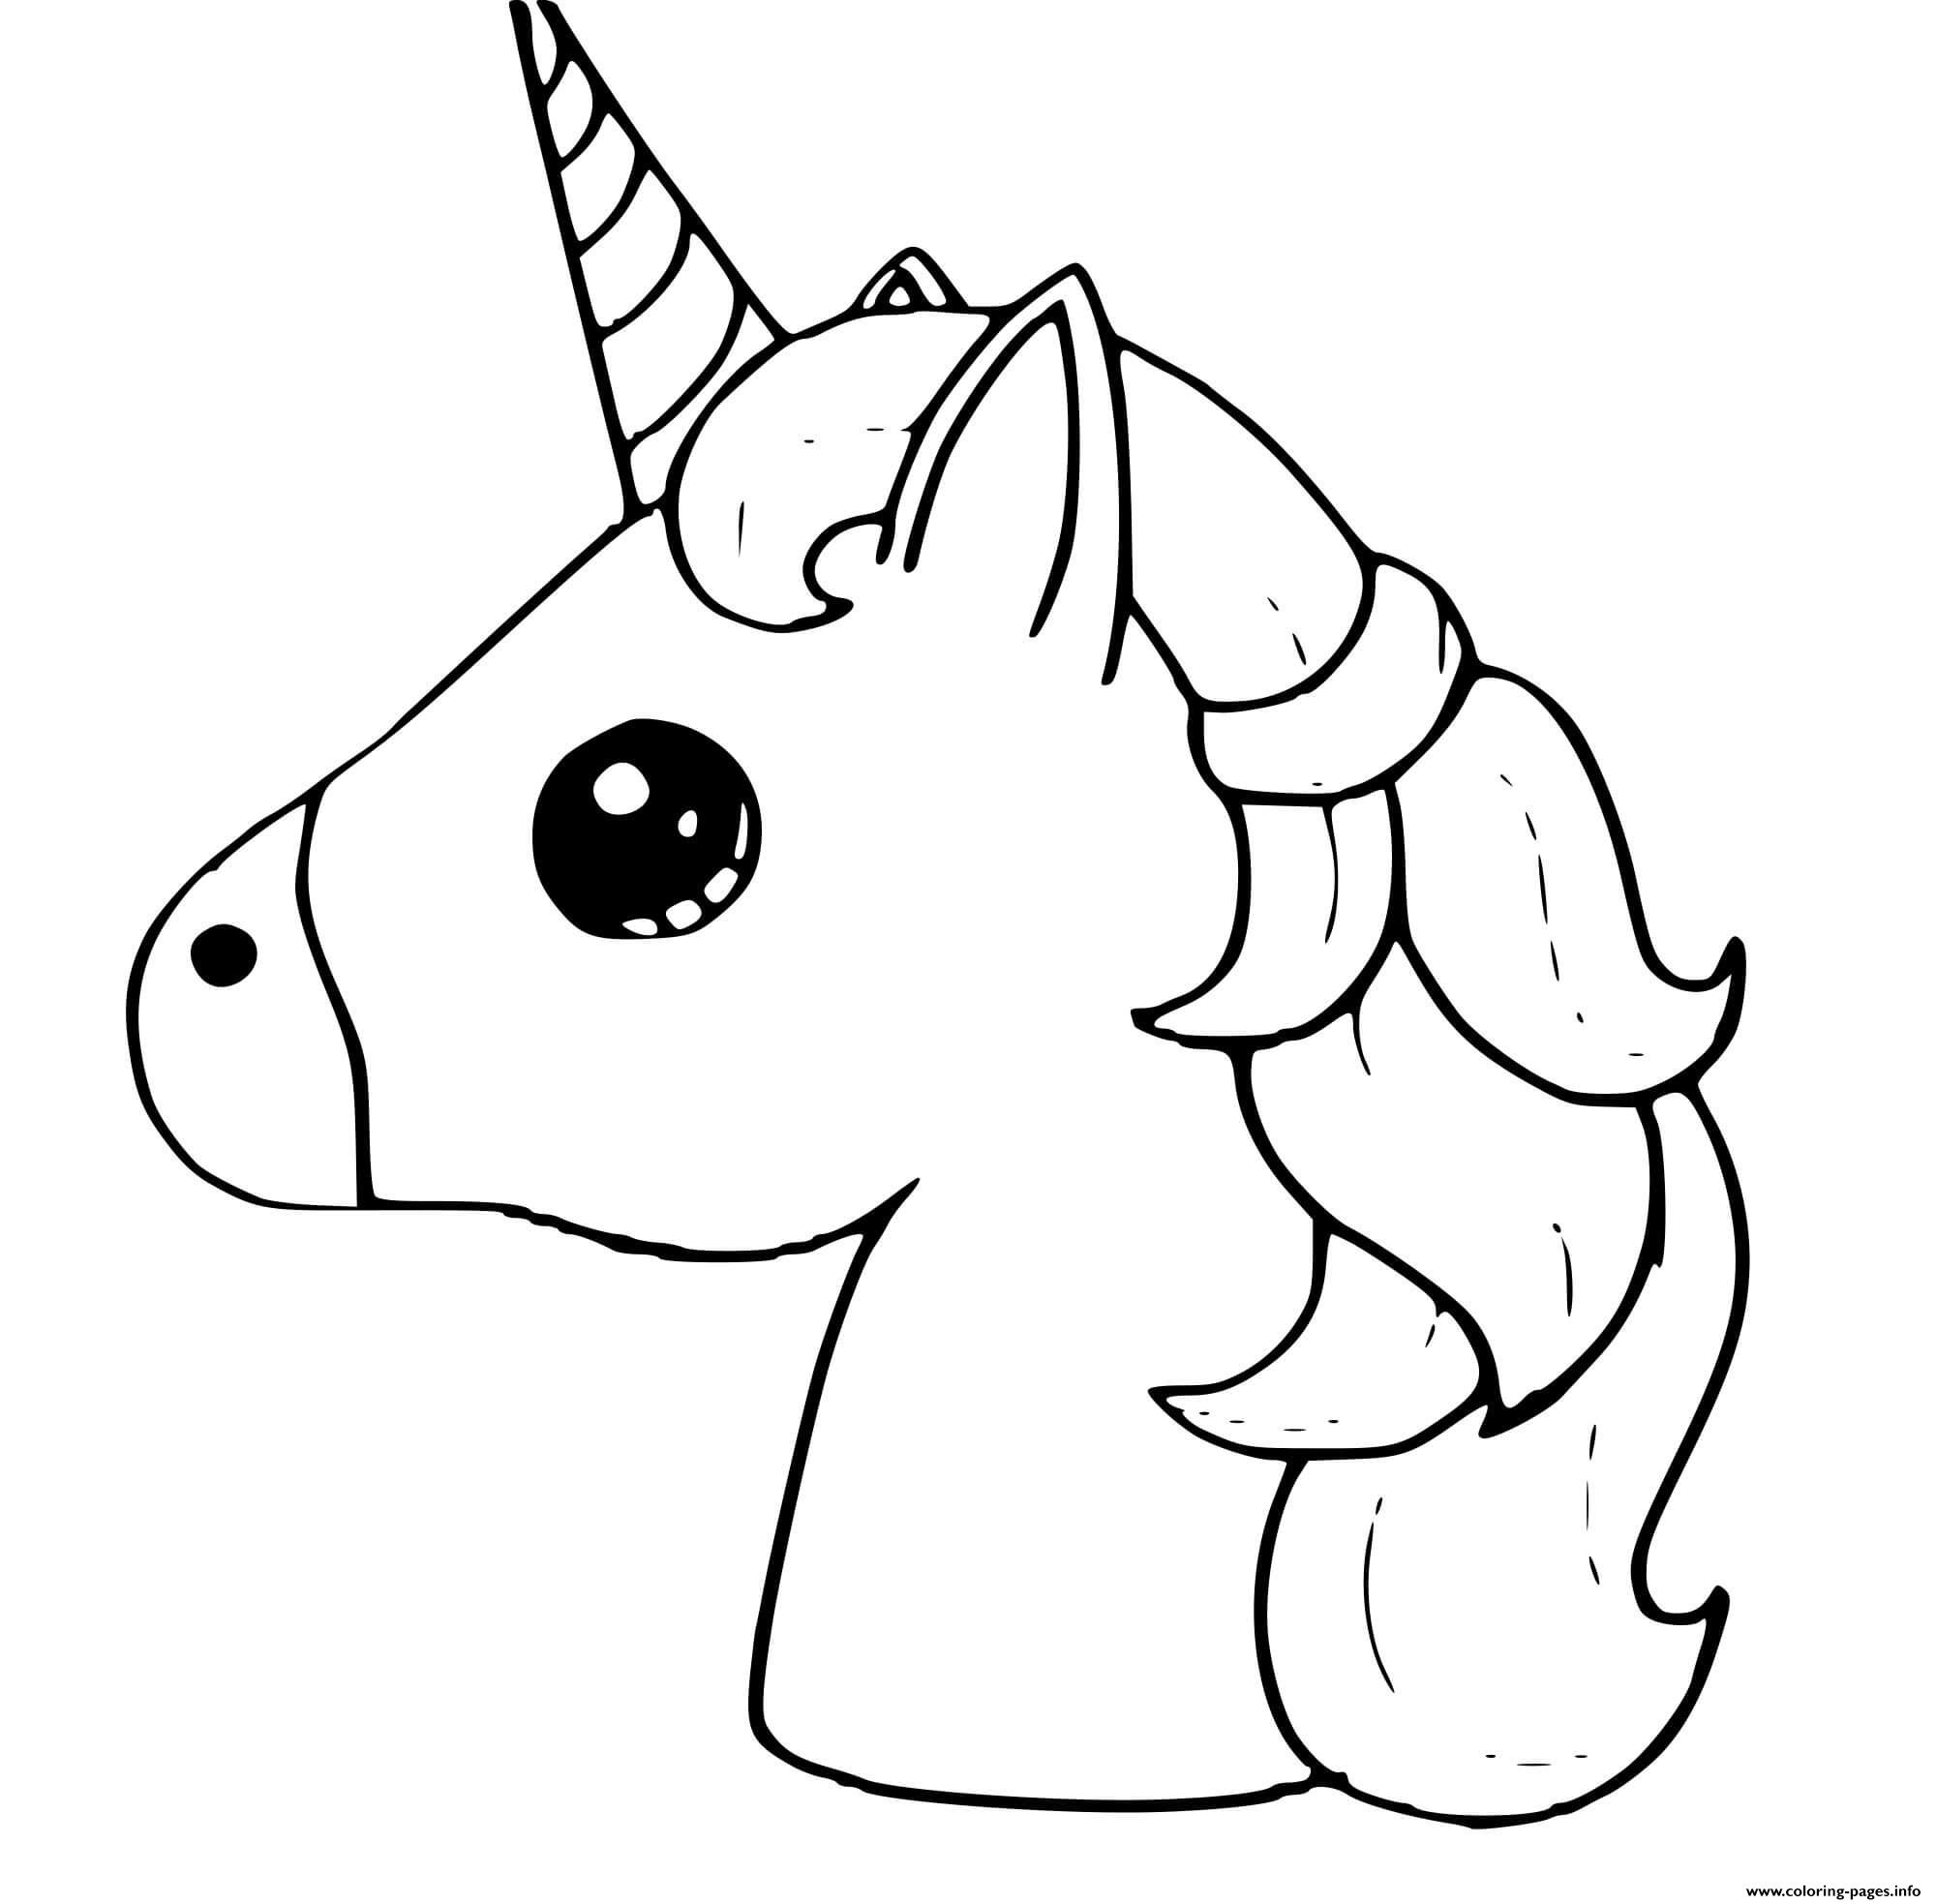 Cute Unicorn Emoji Kawaii coloring pages